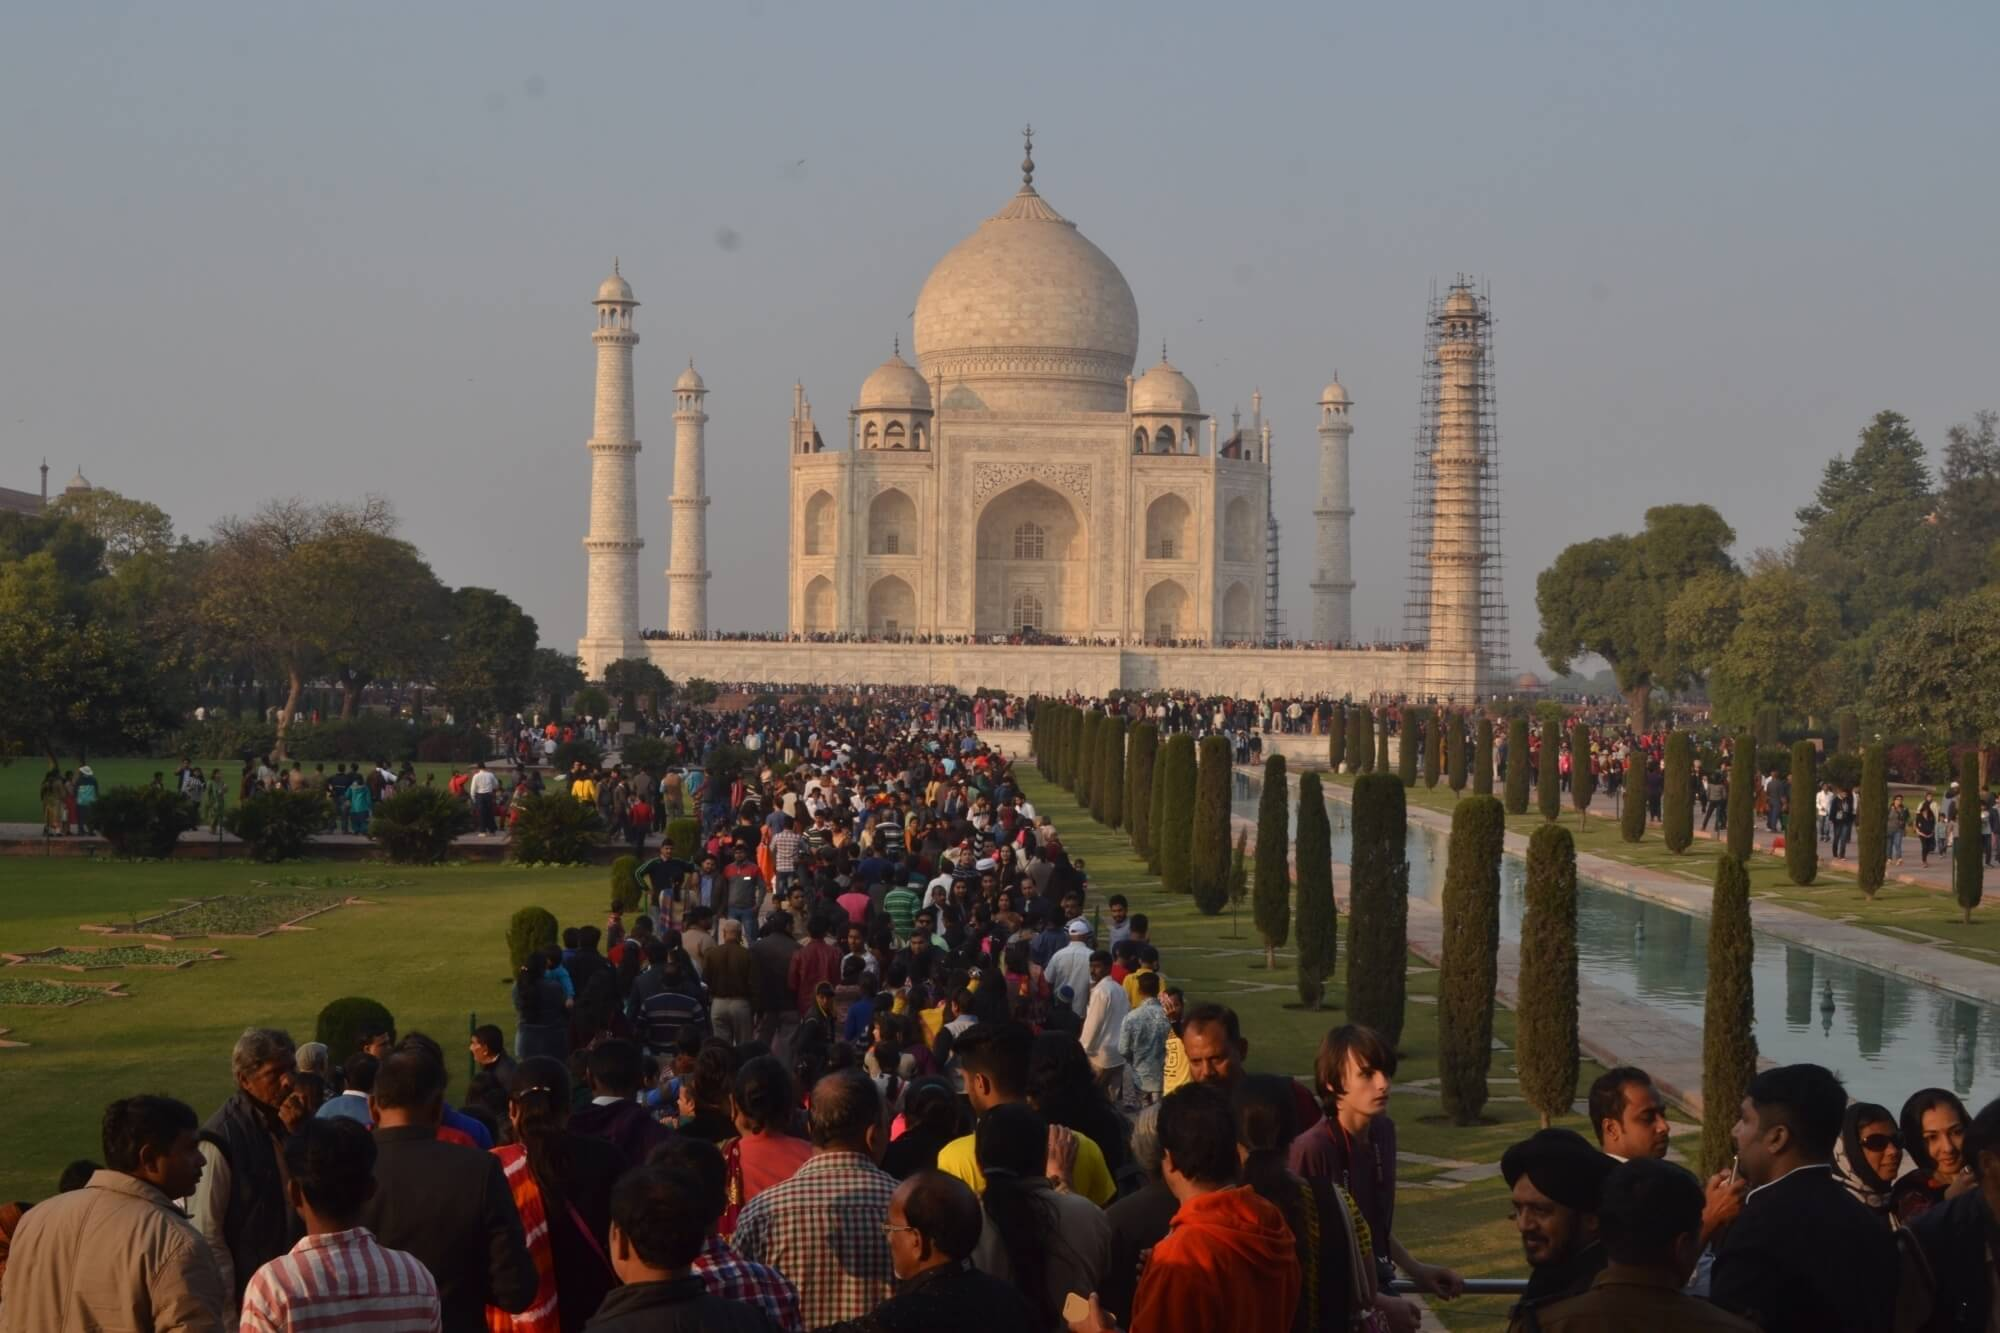 crowd in Taj Mahal